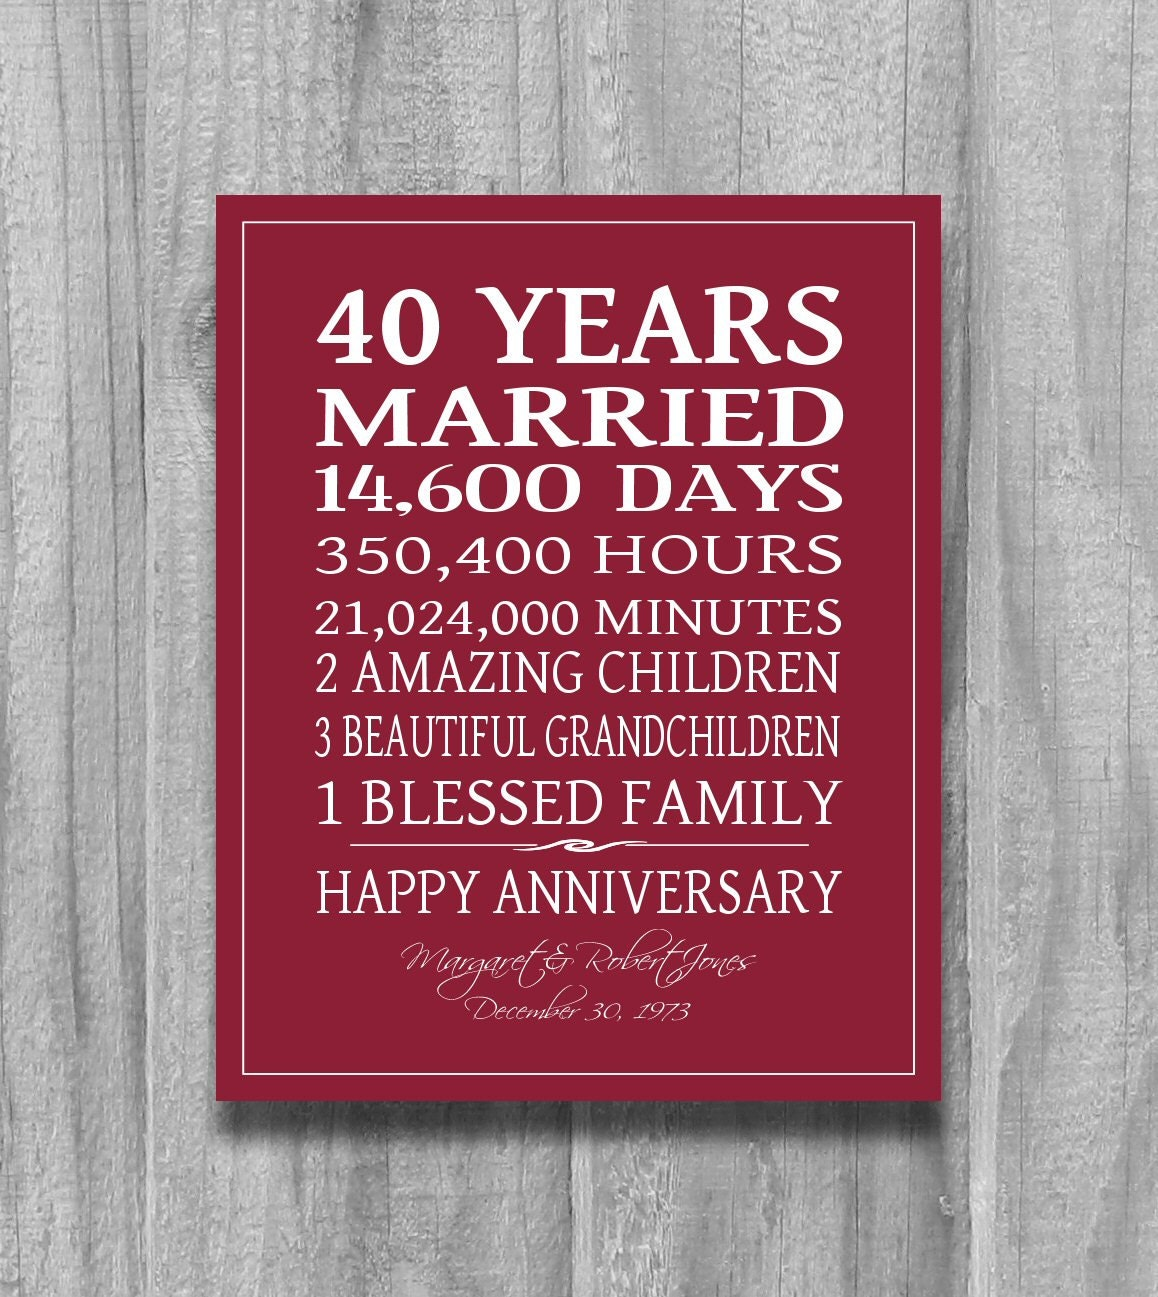 40 Wedding Anniversary Gift For Husband : RUBY 4Oth Anniversary Gift Personalized by PrintsbyChristine